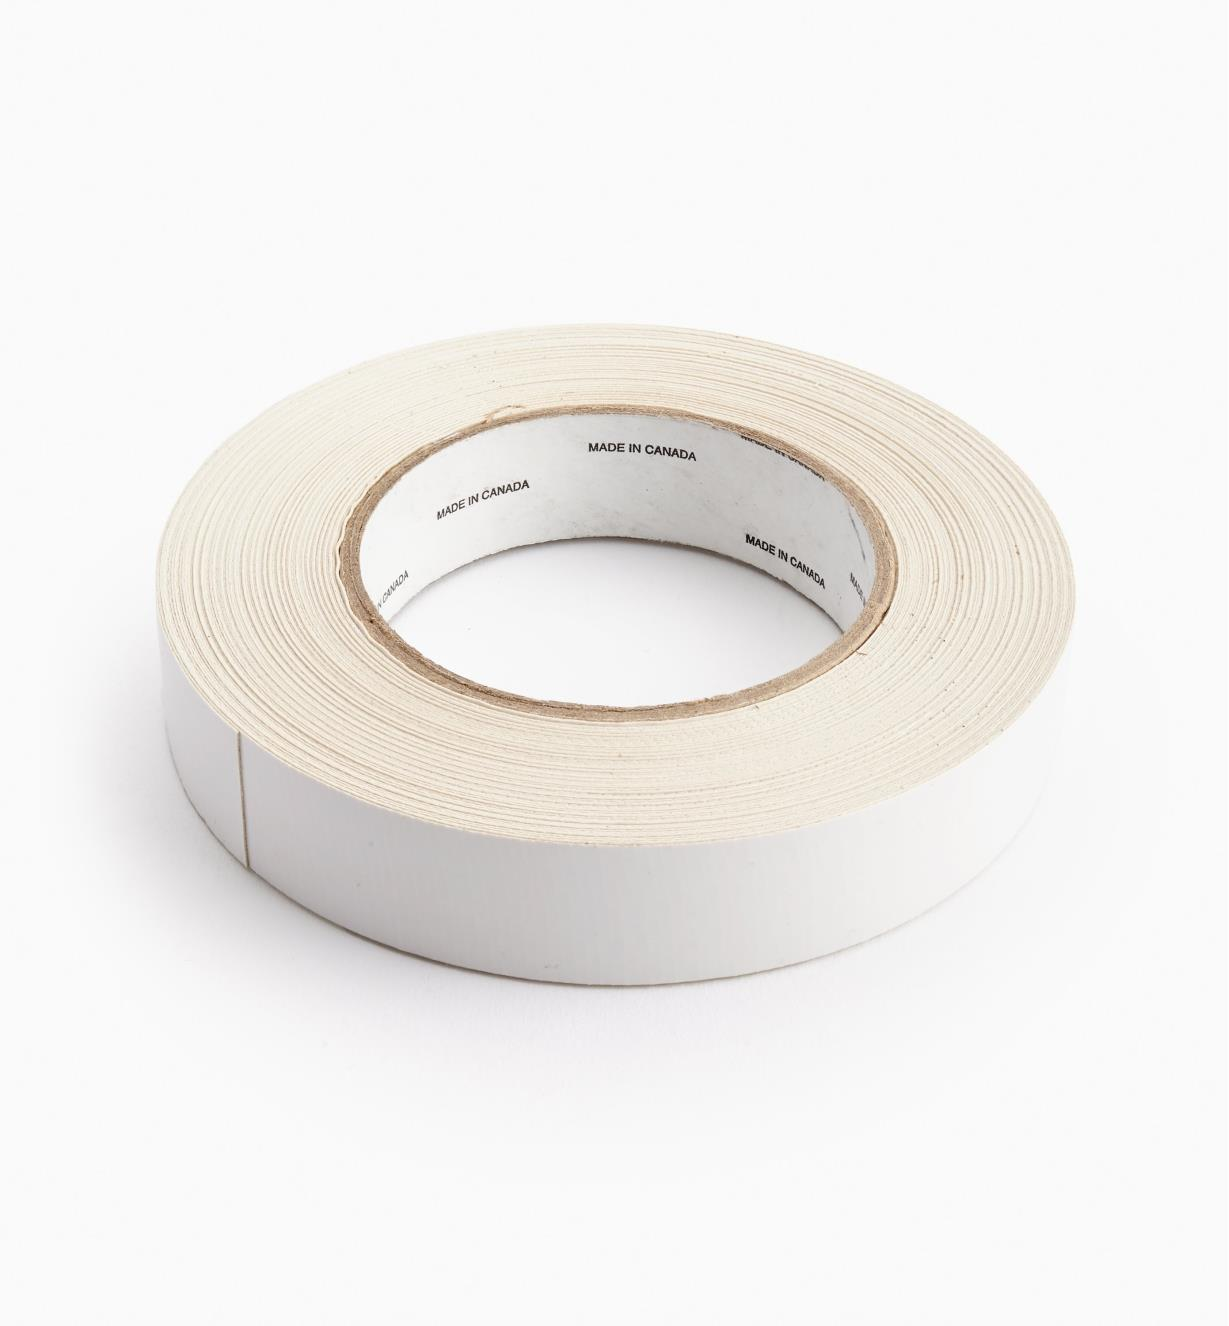 "25U0311 - 1"" x 75' (0.013"") Double-Sided Tape"